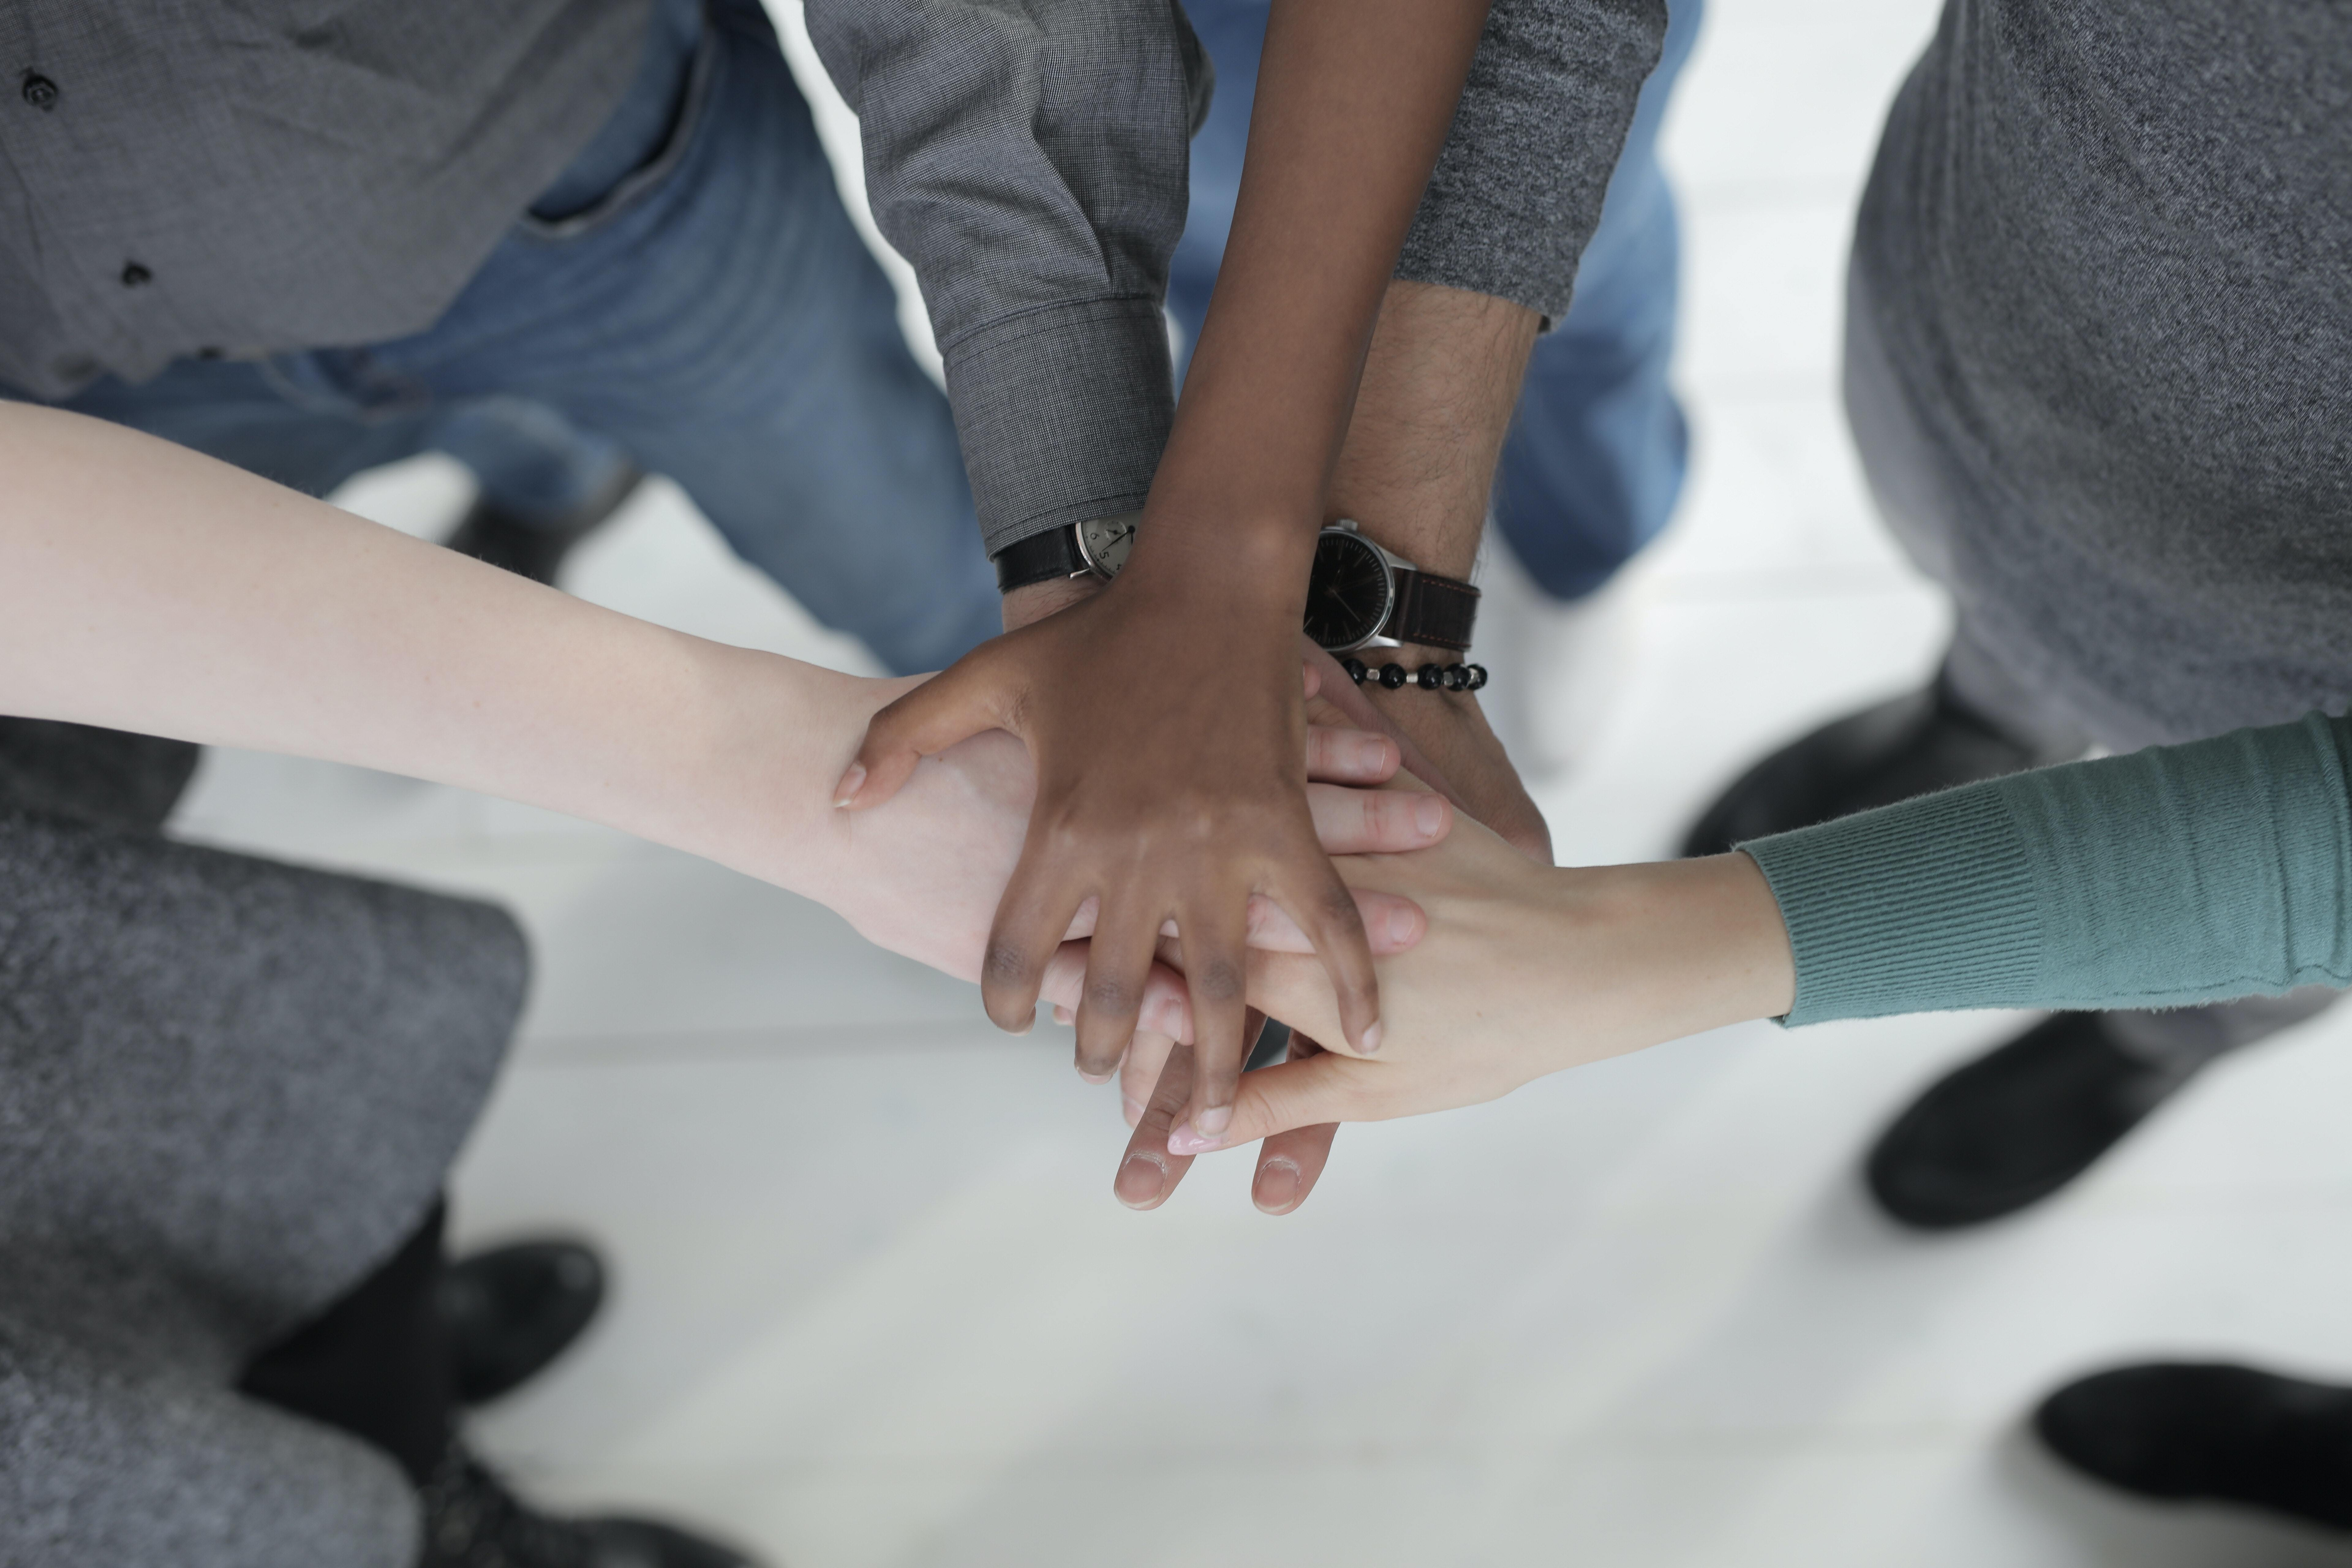 hands from people of different ethnicities reaching together